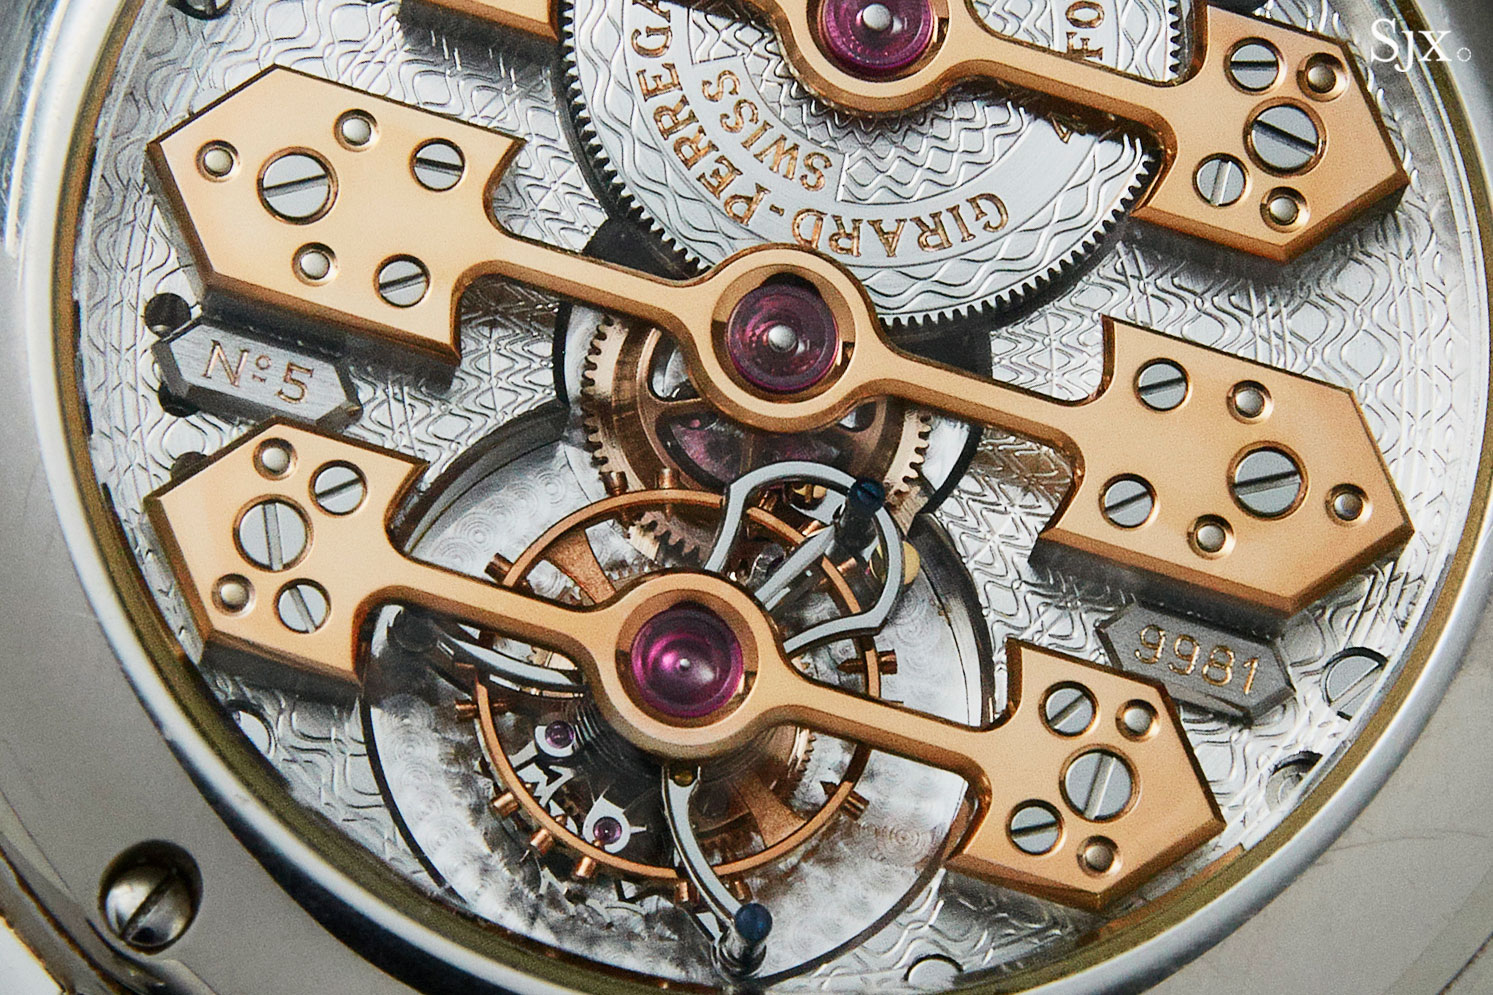 Girard-Perregaux Chronograph Gold Bridges Tourbillon 2